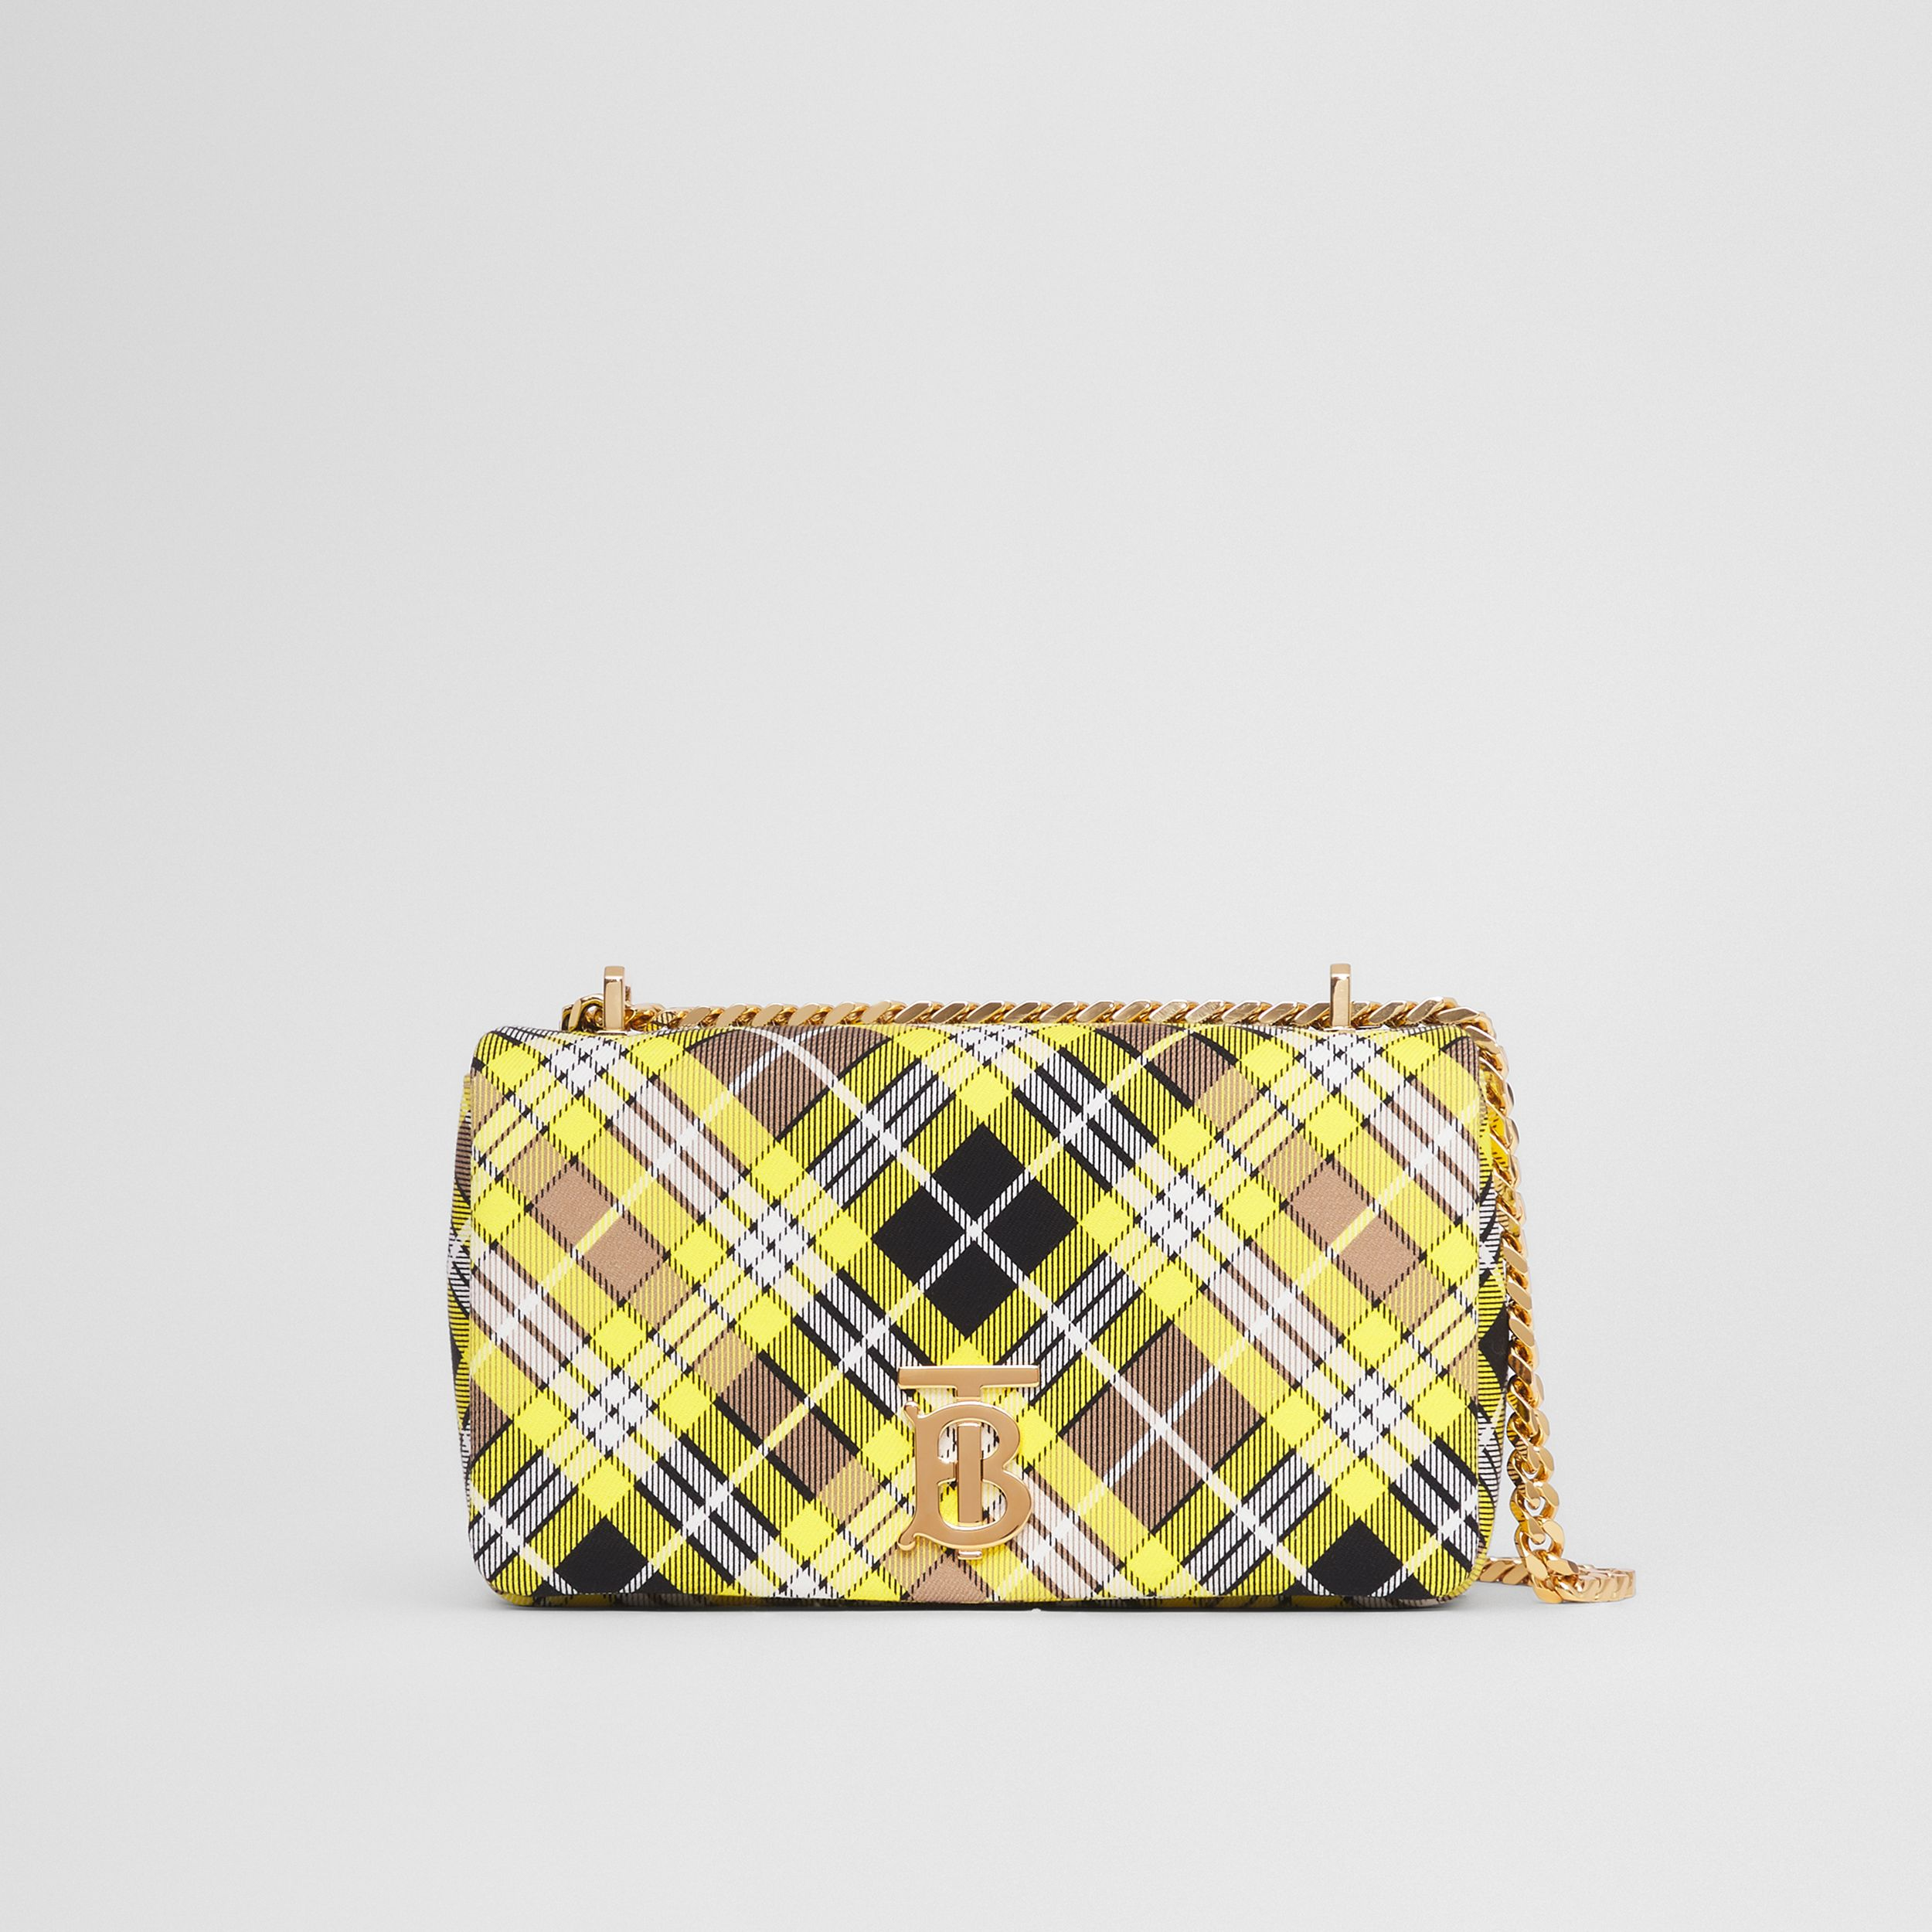 Small Tartan Cotton Lola Bag in Marigold Yellow - Women | Burberry - 1